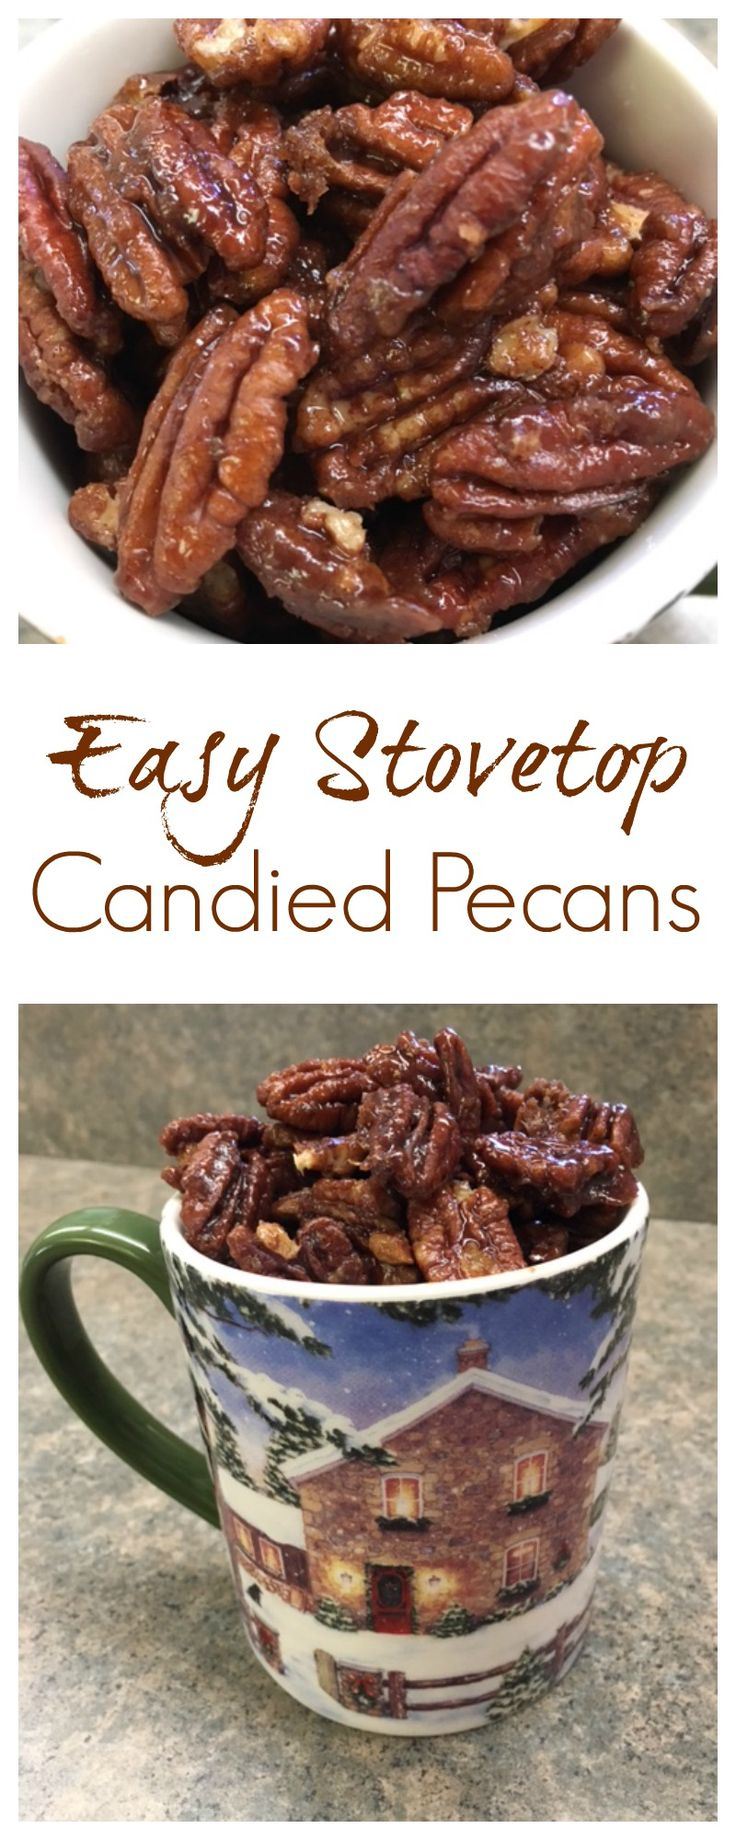 Christmas is comin' up quick. It's October, but December is right around the corner. I love this recipe because it's so easy and inexpensive. It only took me about 15 minutes to make. The pecans cool quickly and you have a nice gift to take to a friend, or a teacher, or you can snack on …